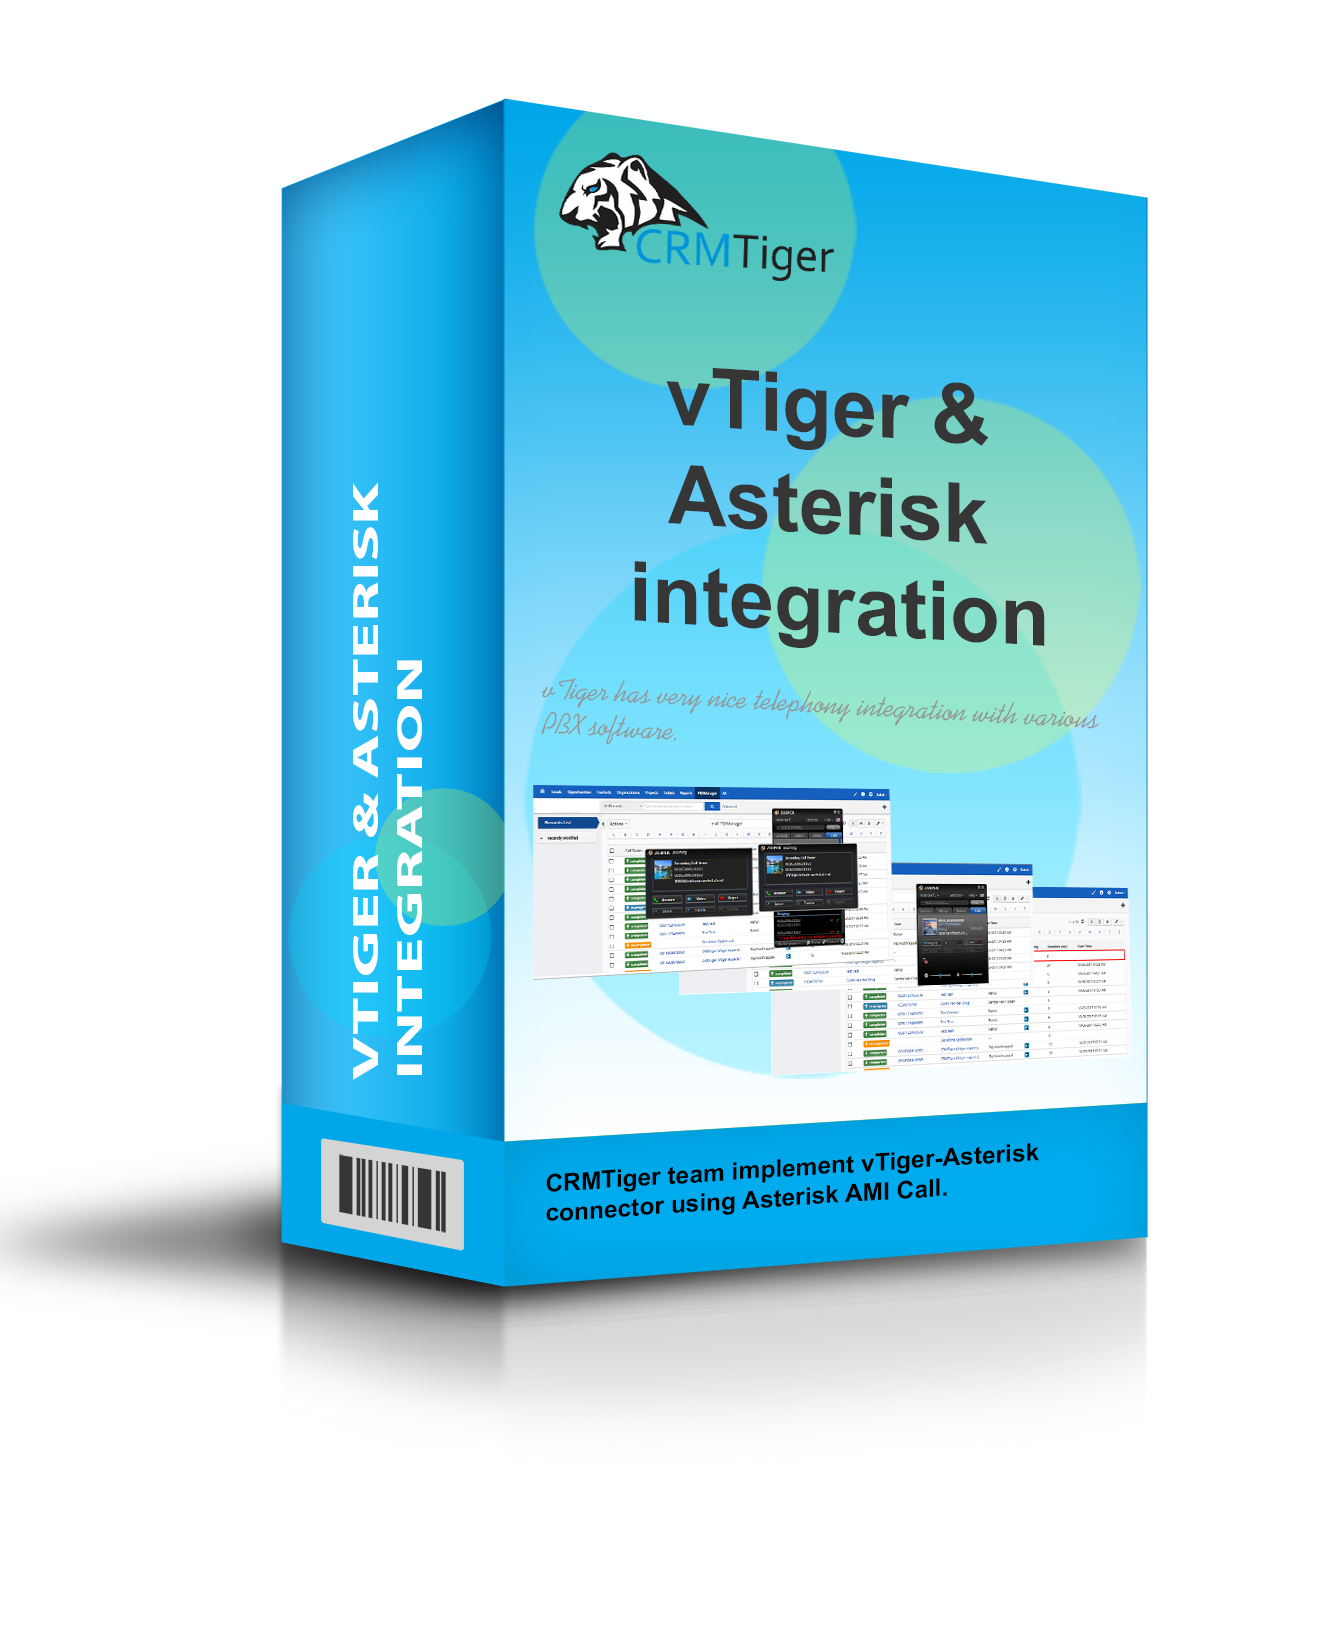 Sole Trader Invoice Word Vtger Crm  Vtiger Pbx  Asterisk Integration Portable Receipt Printer with Subcontractor Invoice Template Vtigerasteriskintegration Yahoo Read Receipt Word